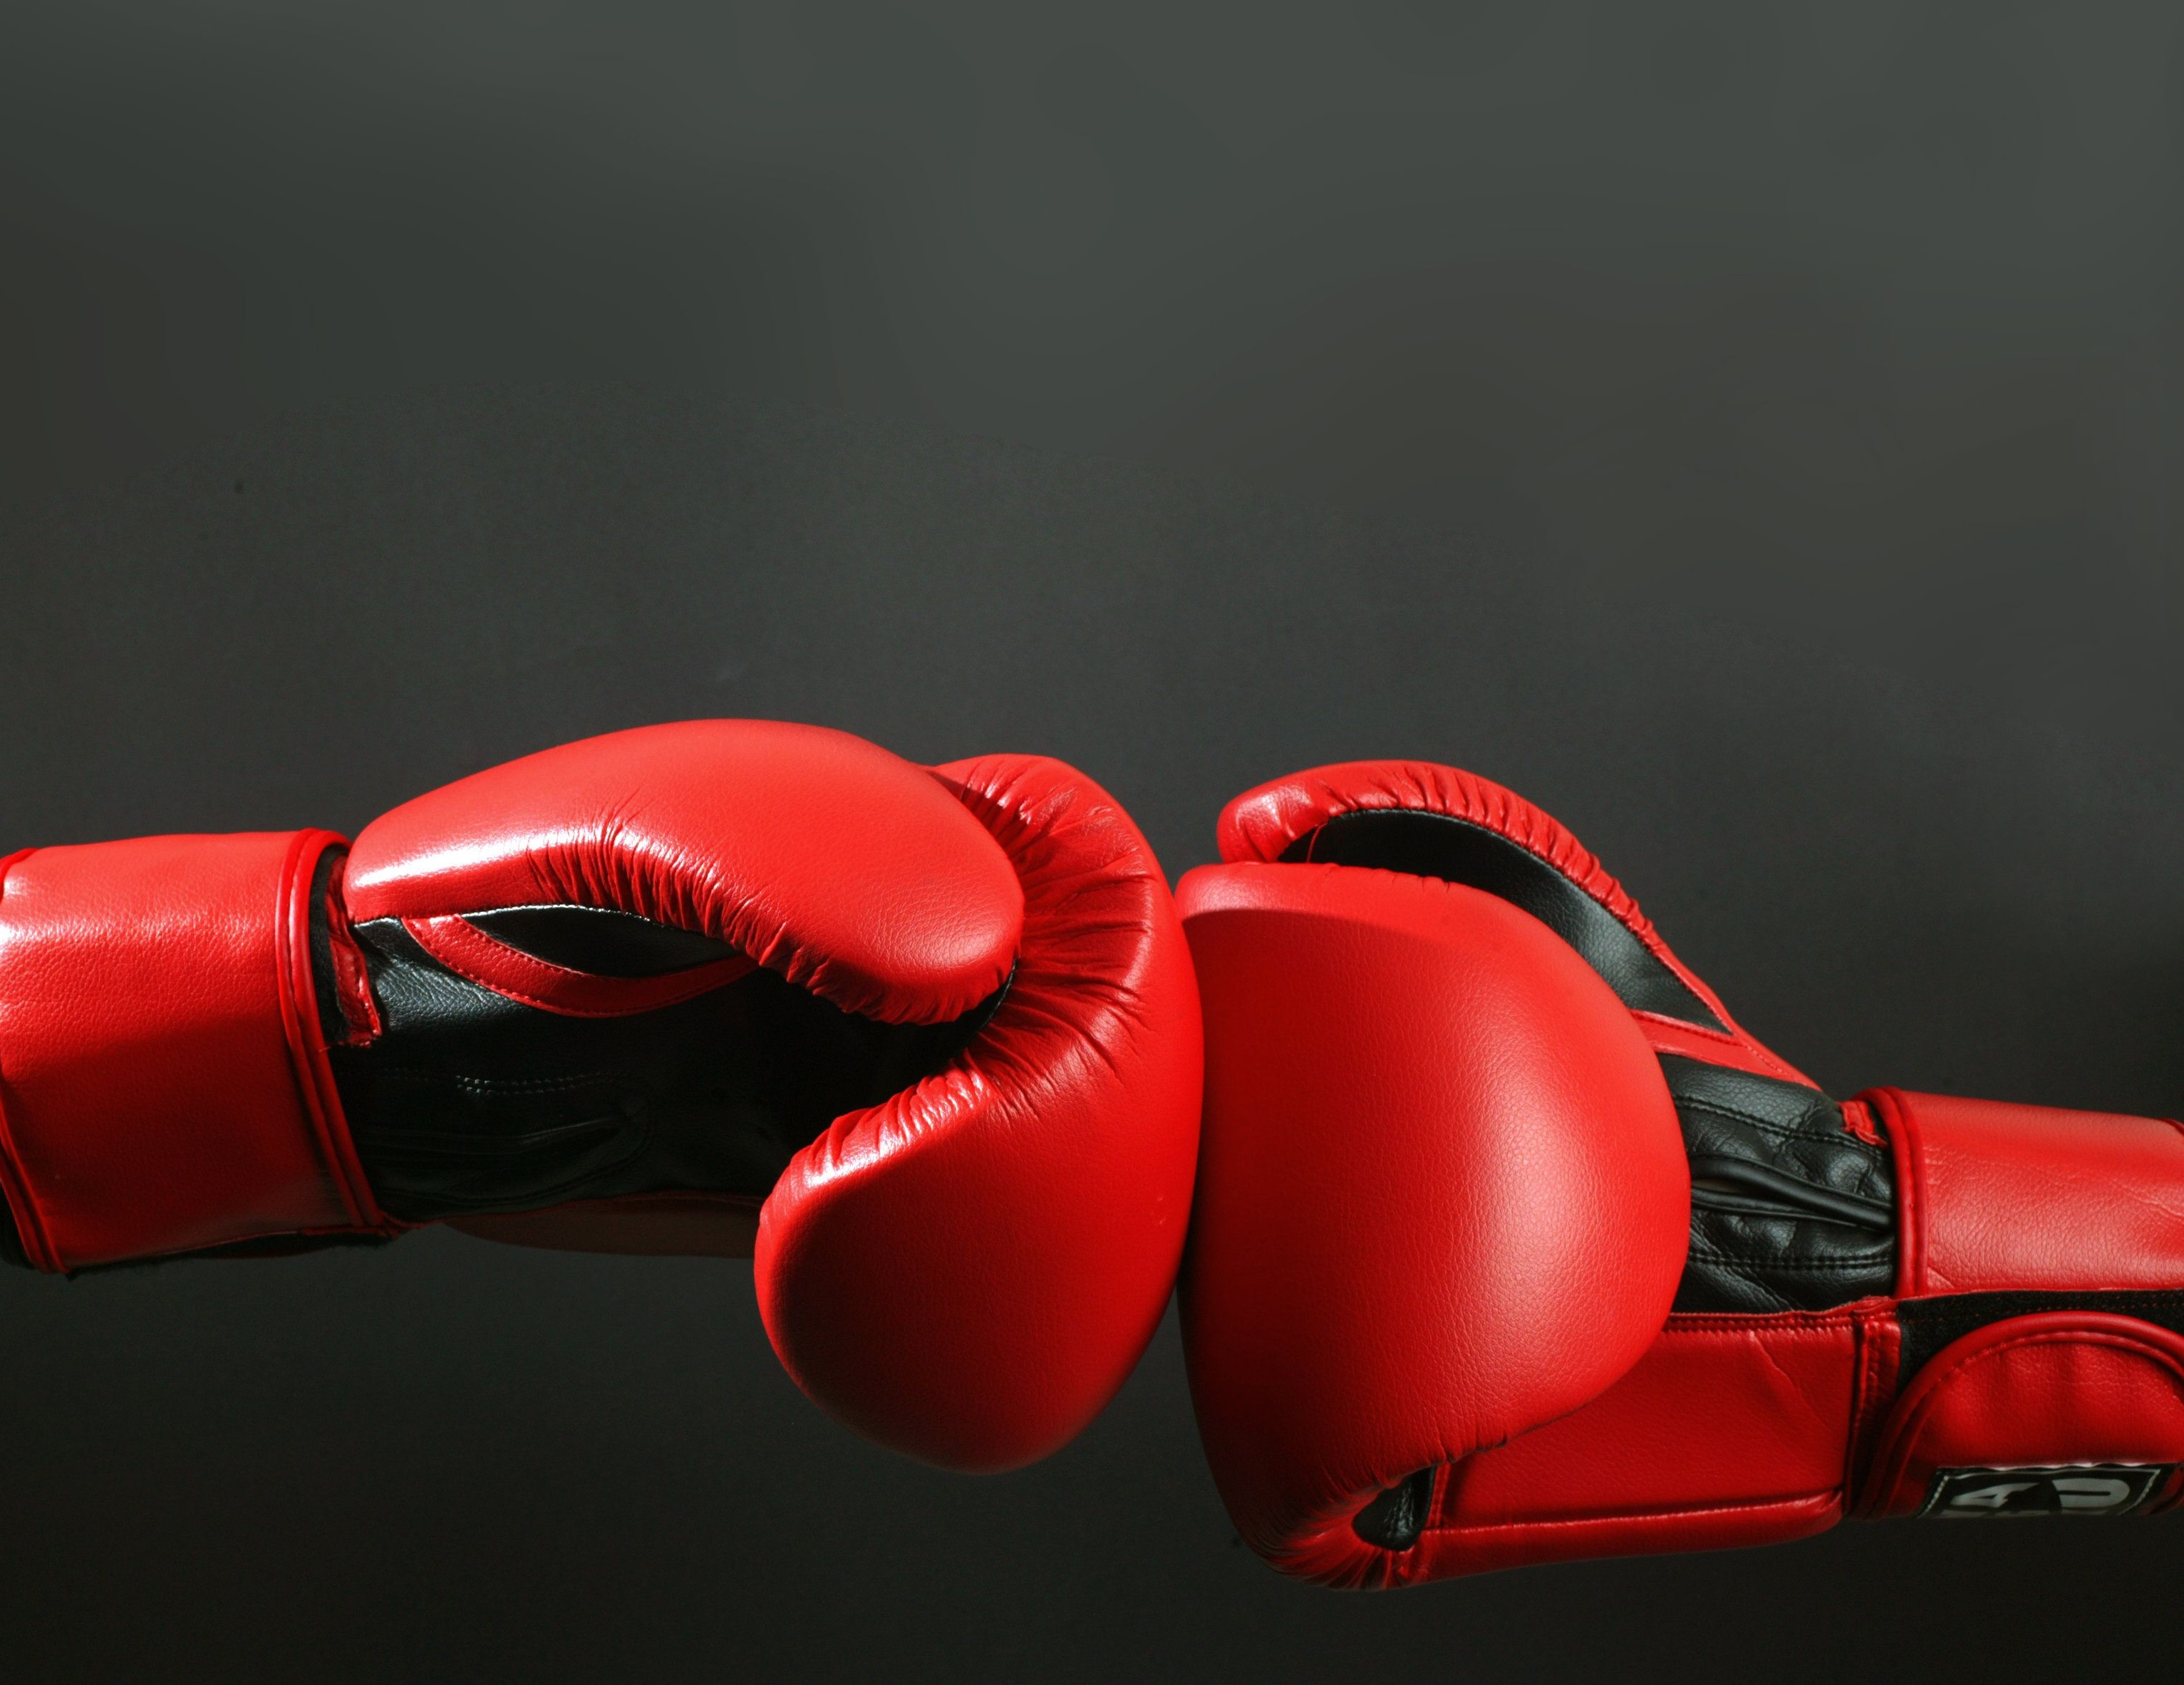 Boxing: Sanctuary from a Country on the Edge